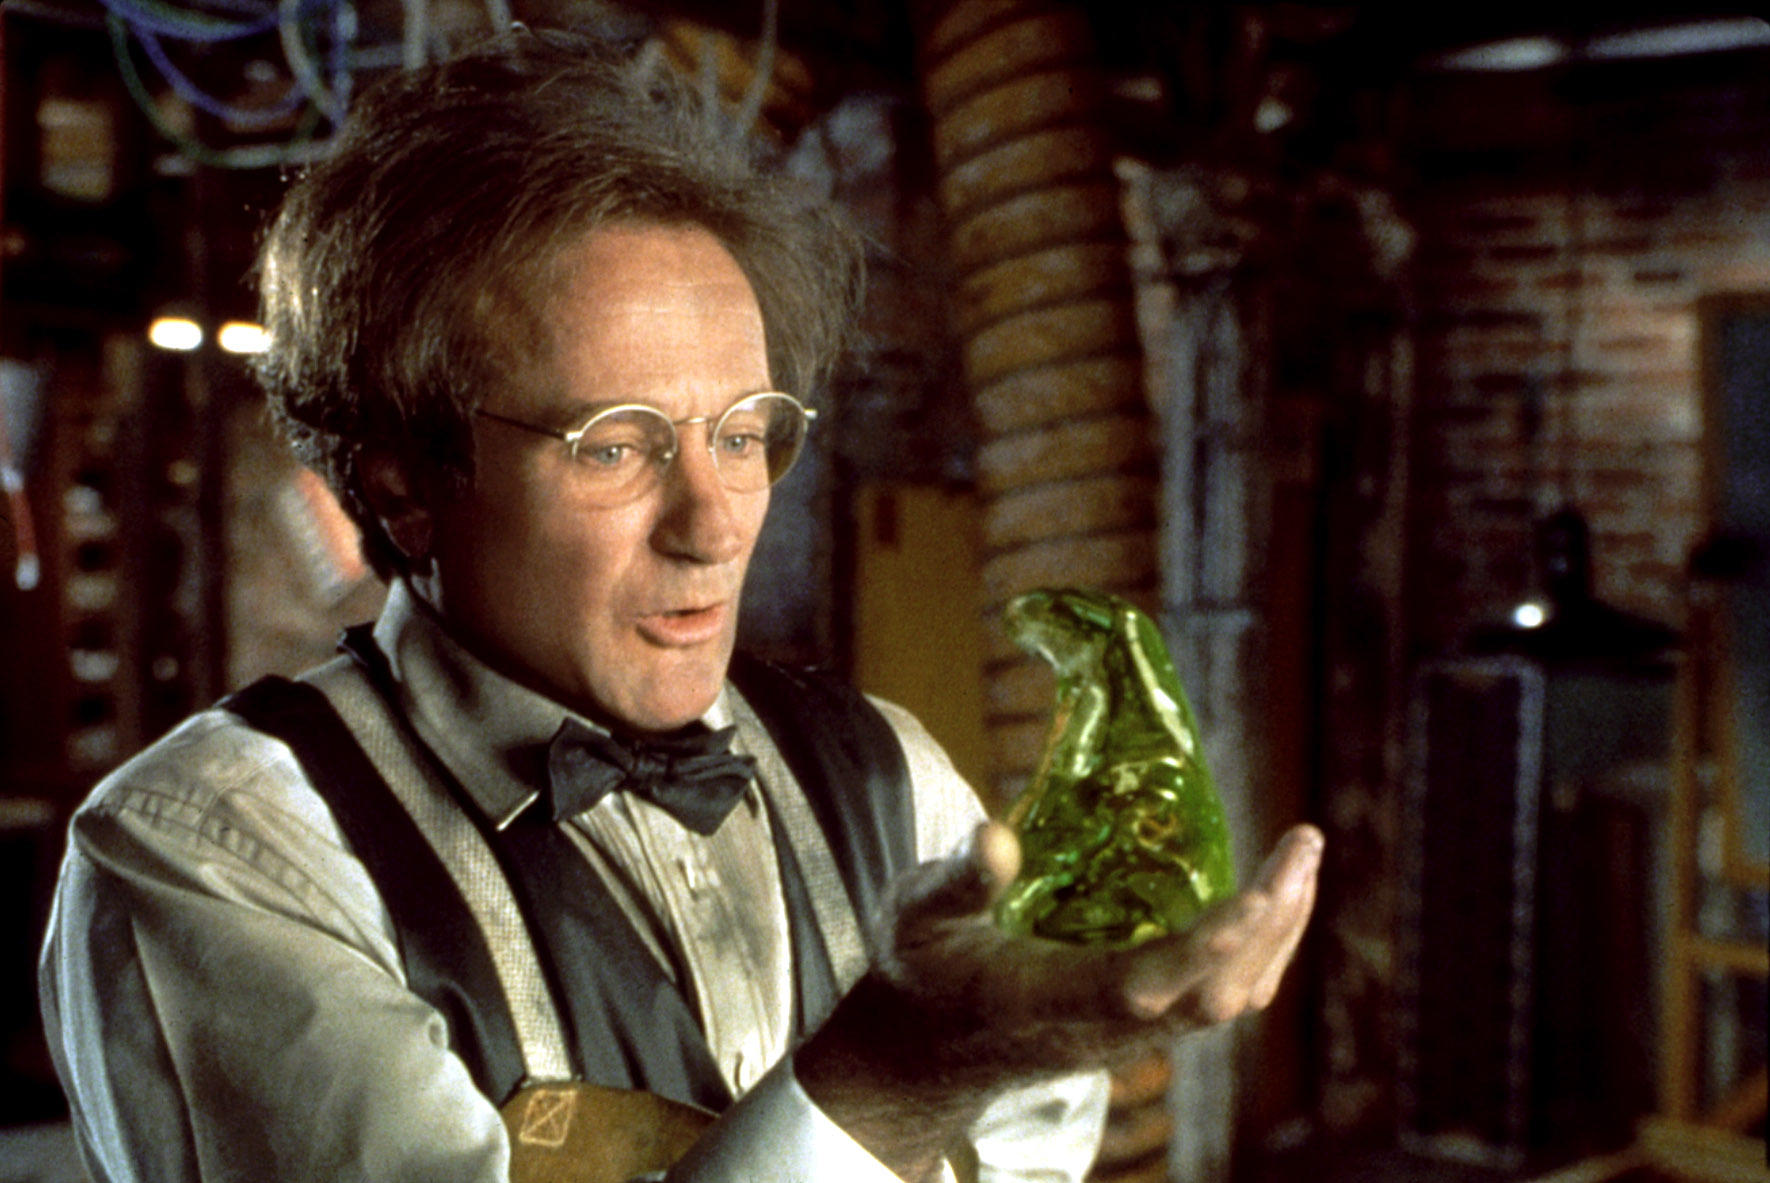 Man in glasses holding flubber - a green stretchy blob